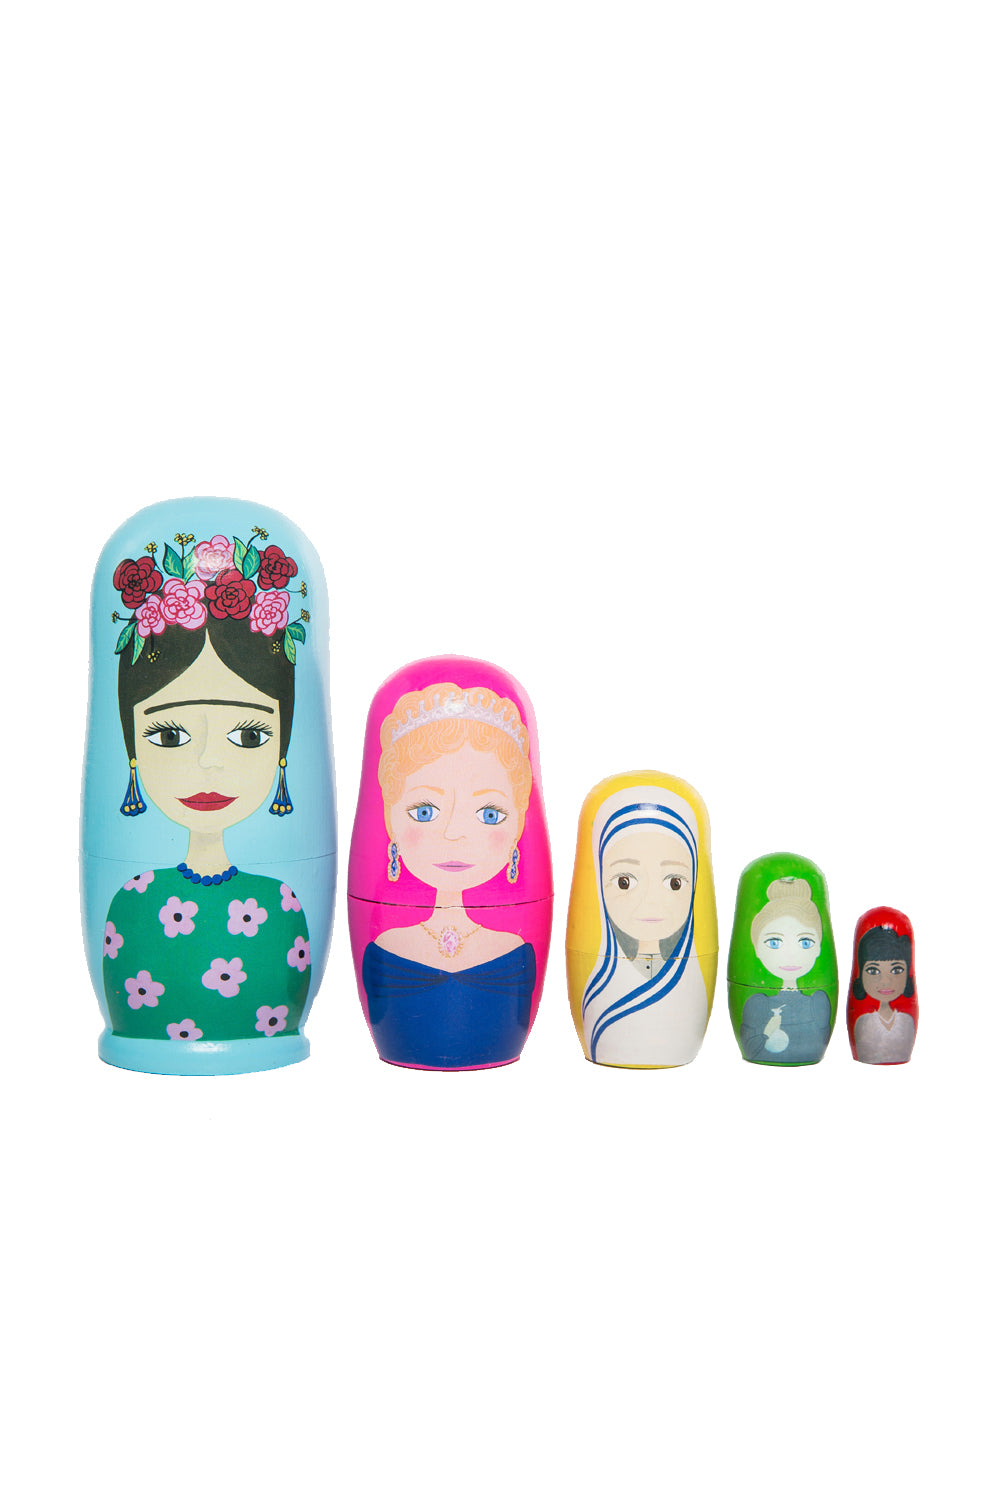 Inspirational Women of the World Babushka Nesting Dolls